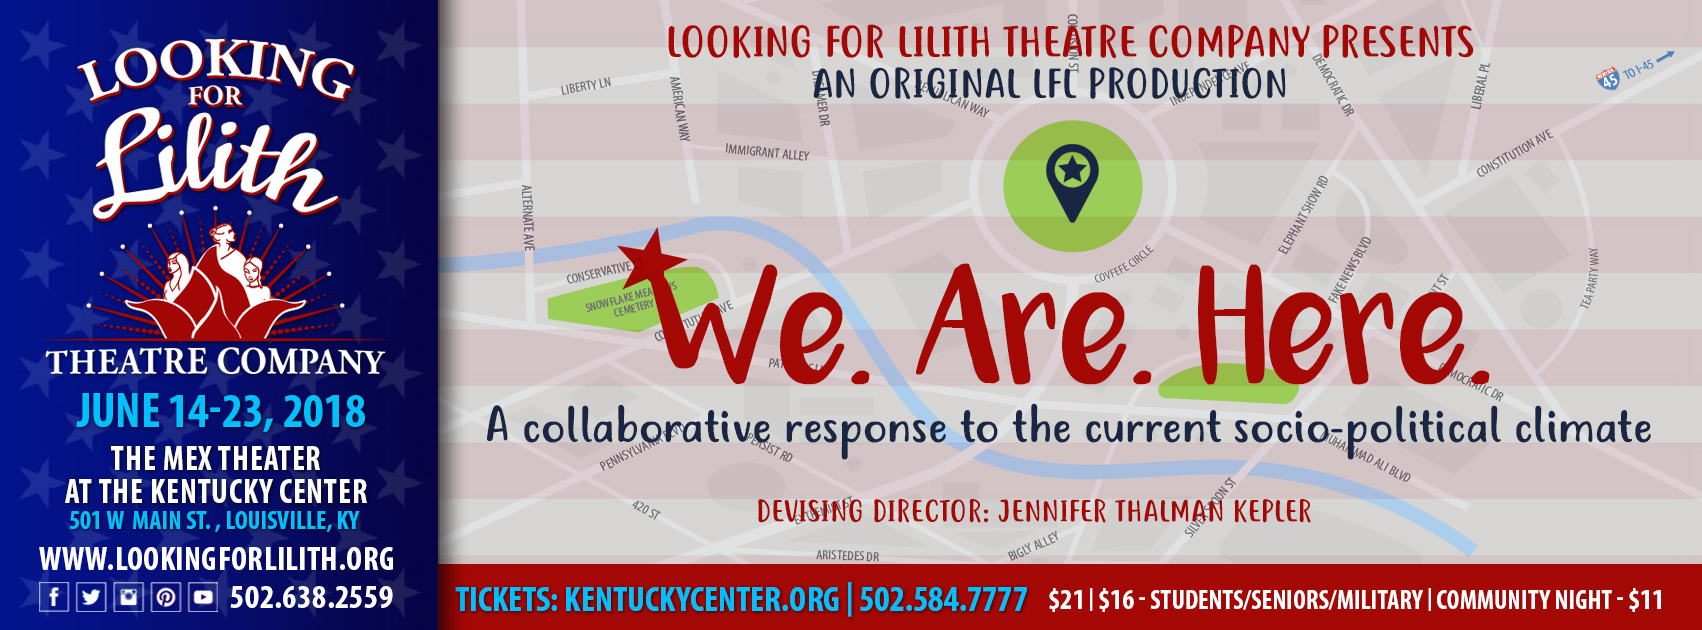 LFL - We. Are. Here. - An original LFL production